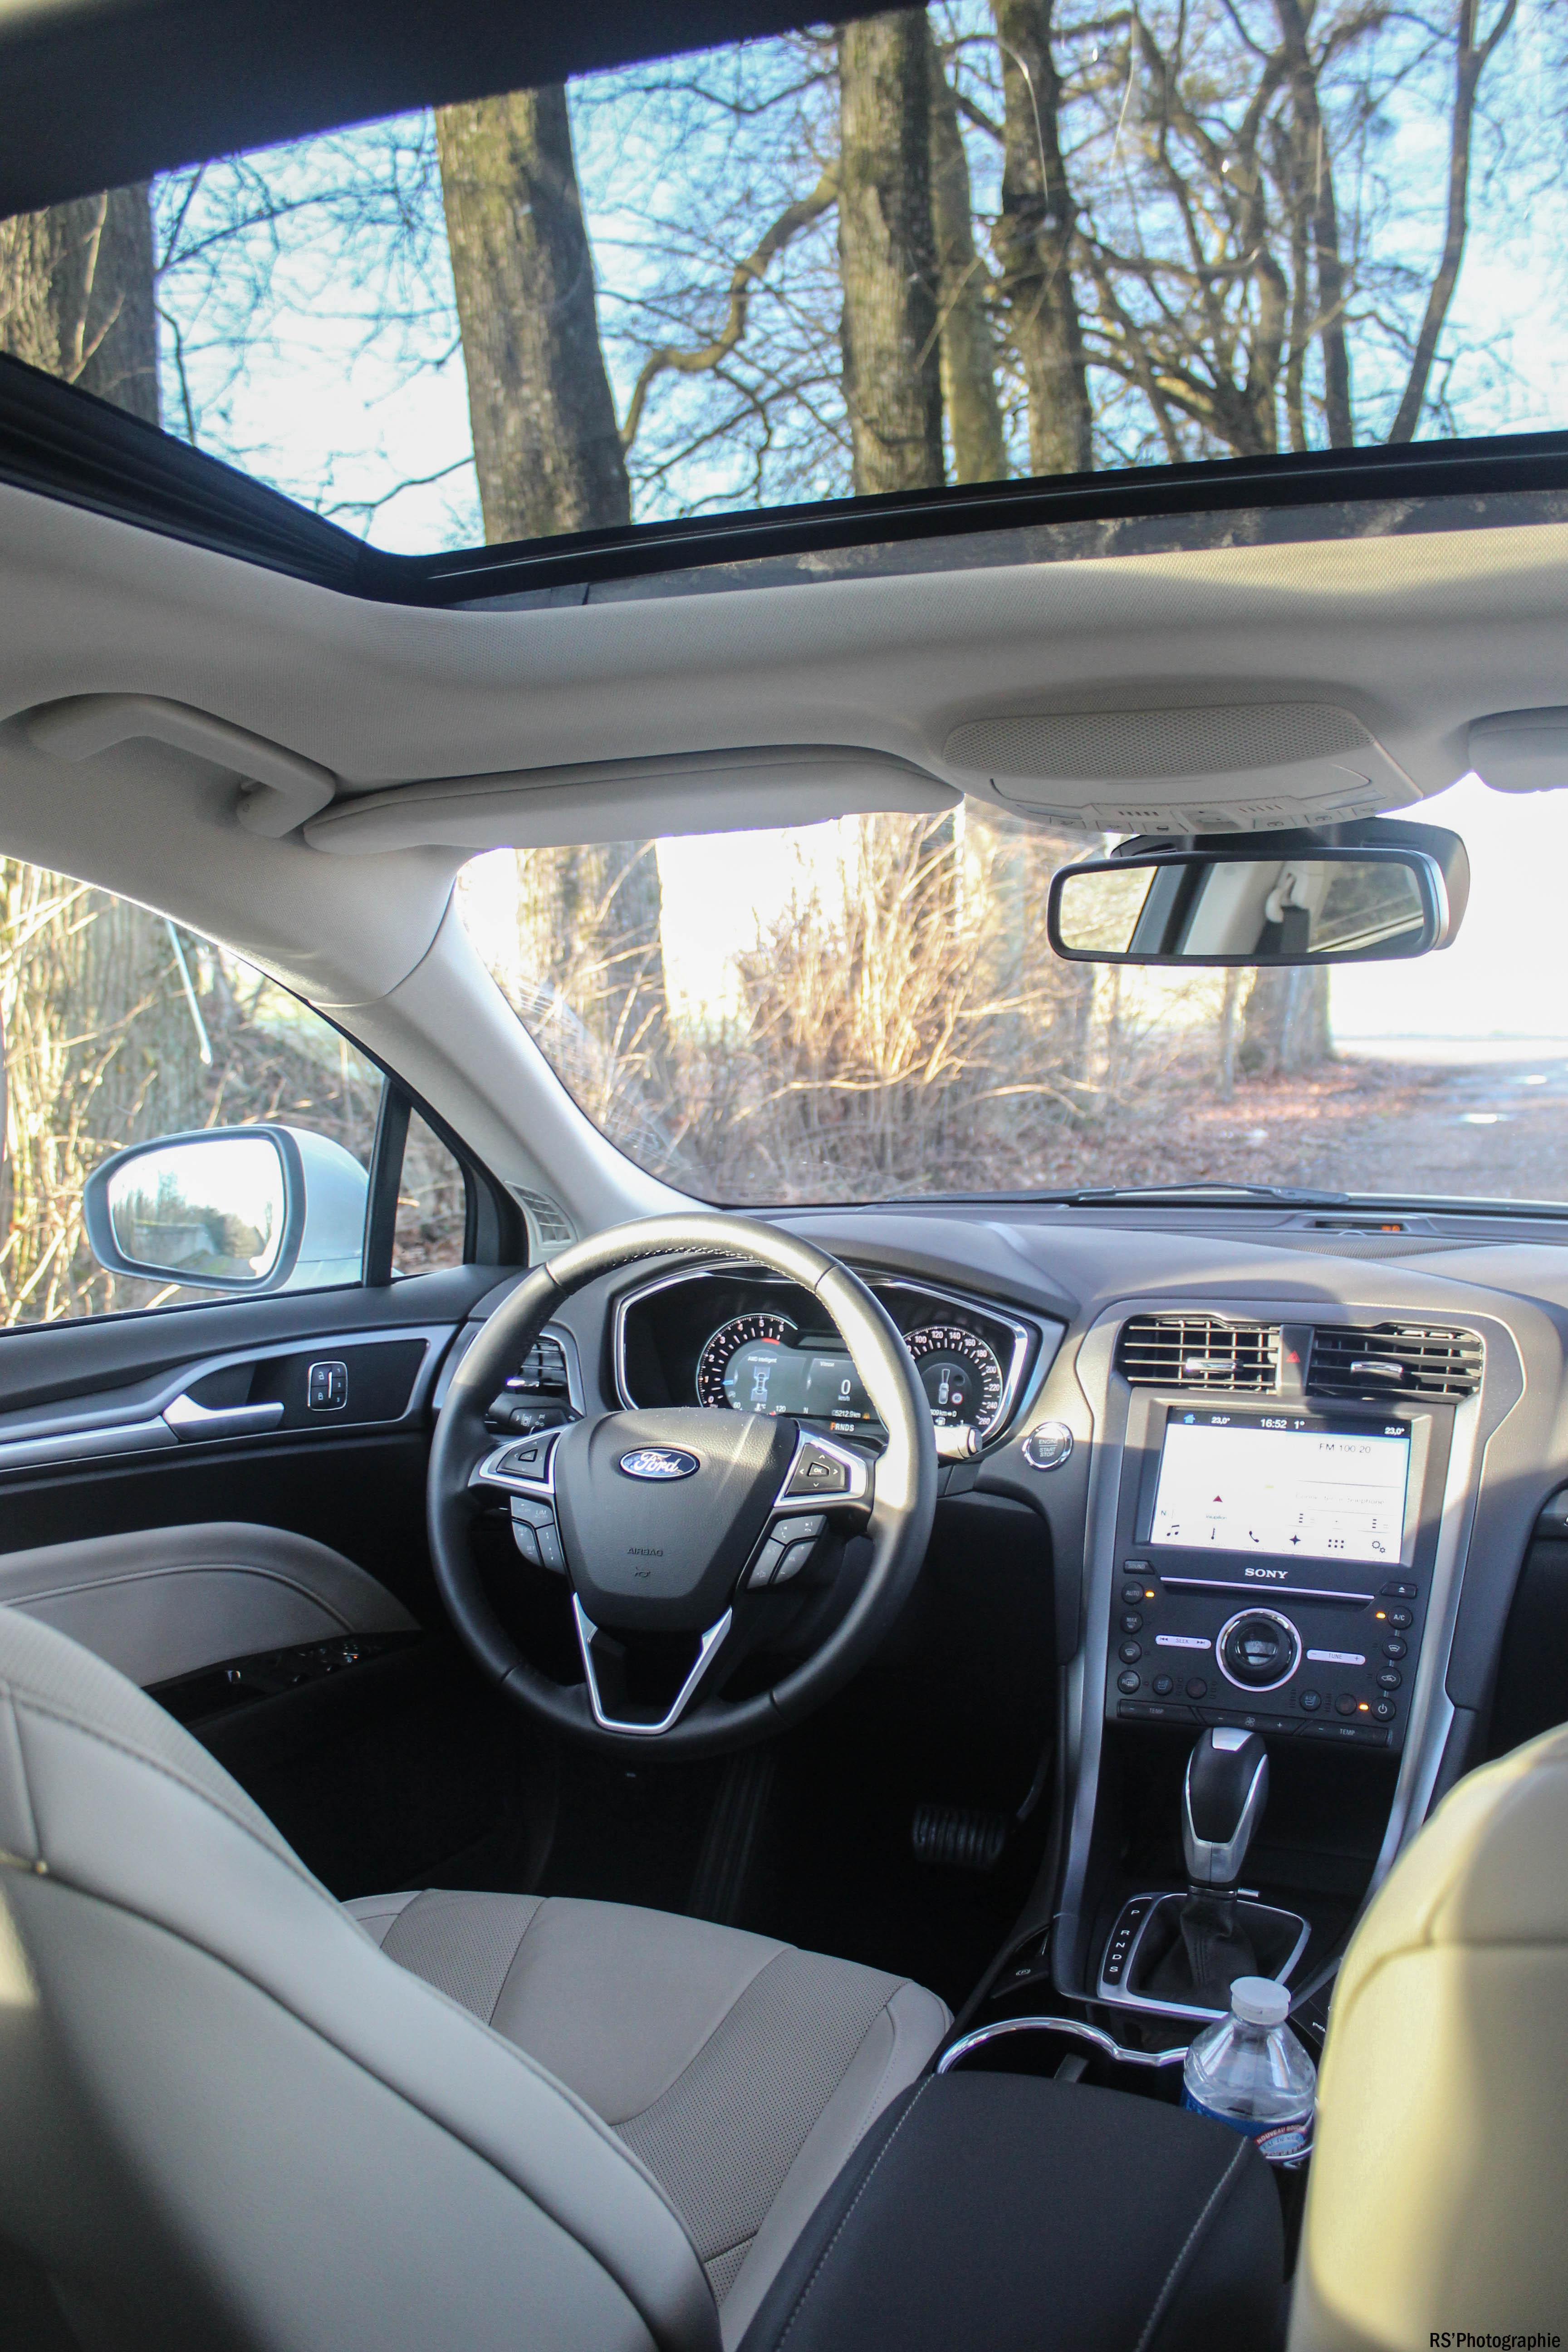 FordMondeoSW19-ford-mondeo-sw-180-intérieur-onboard-arnaud-demasier-rsphotographie